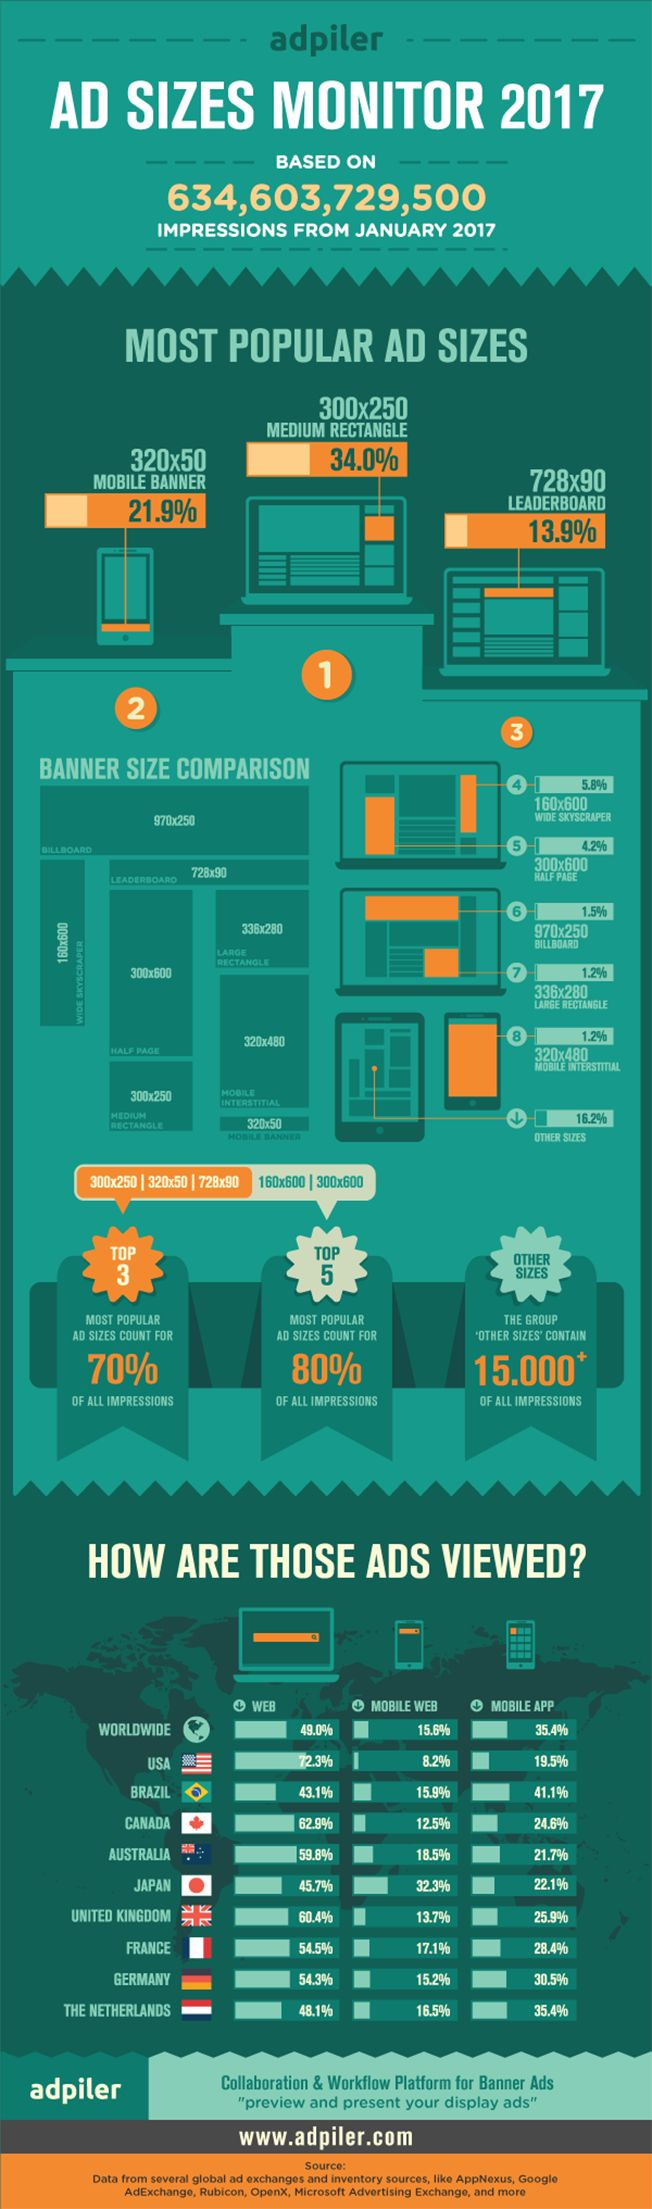 Adpiler, a tech company that focuses on banner and display ads, studied more than 634 billion ad impressions during the first three weeks of the year. When it comes to the banner and display ads market, its infographic below gives you about all the details you could want about what brands are investing in.